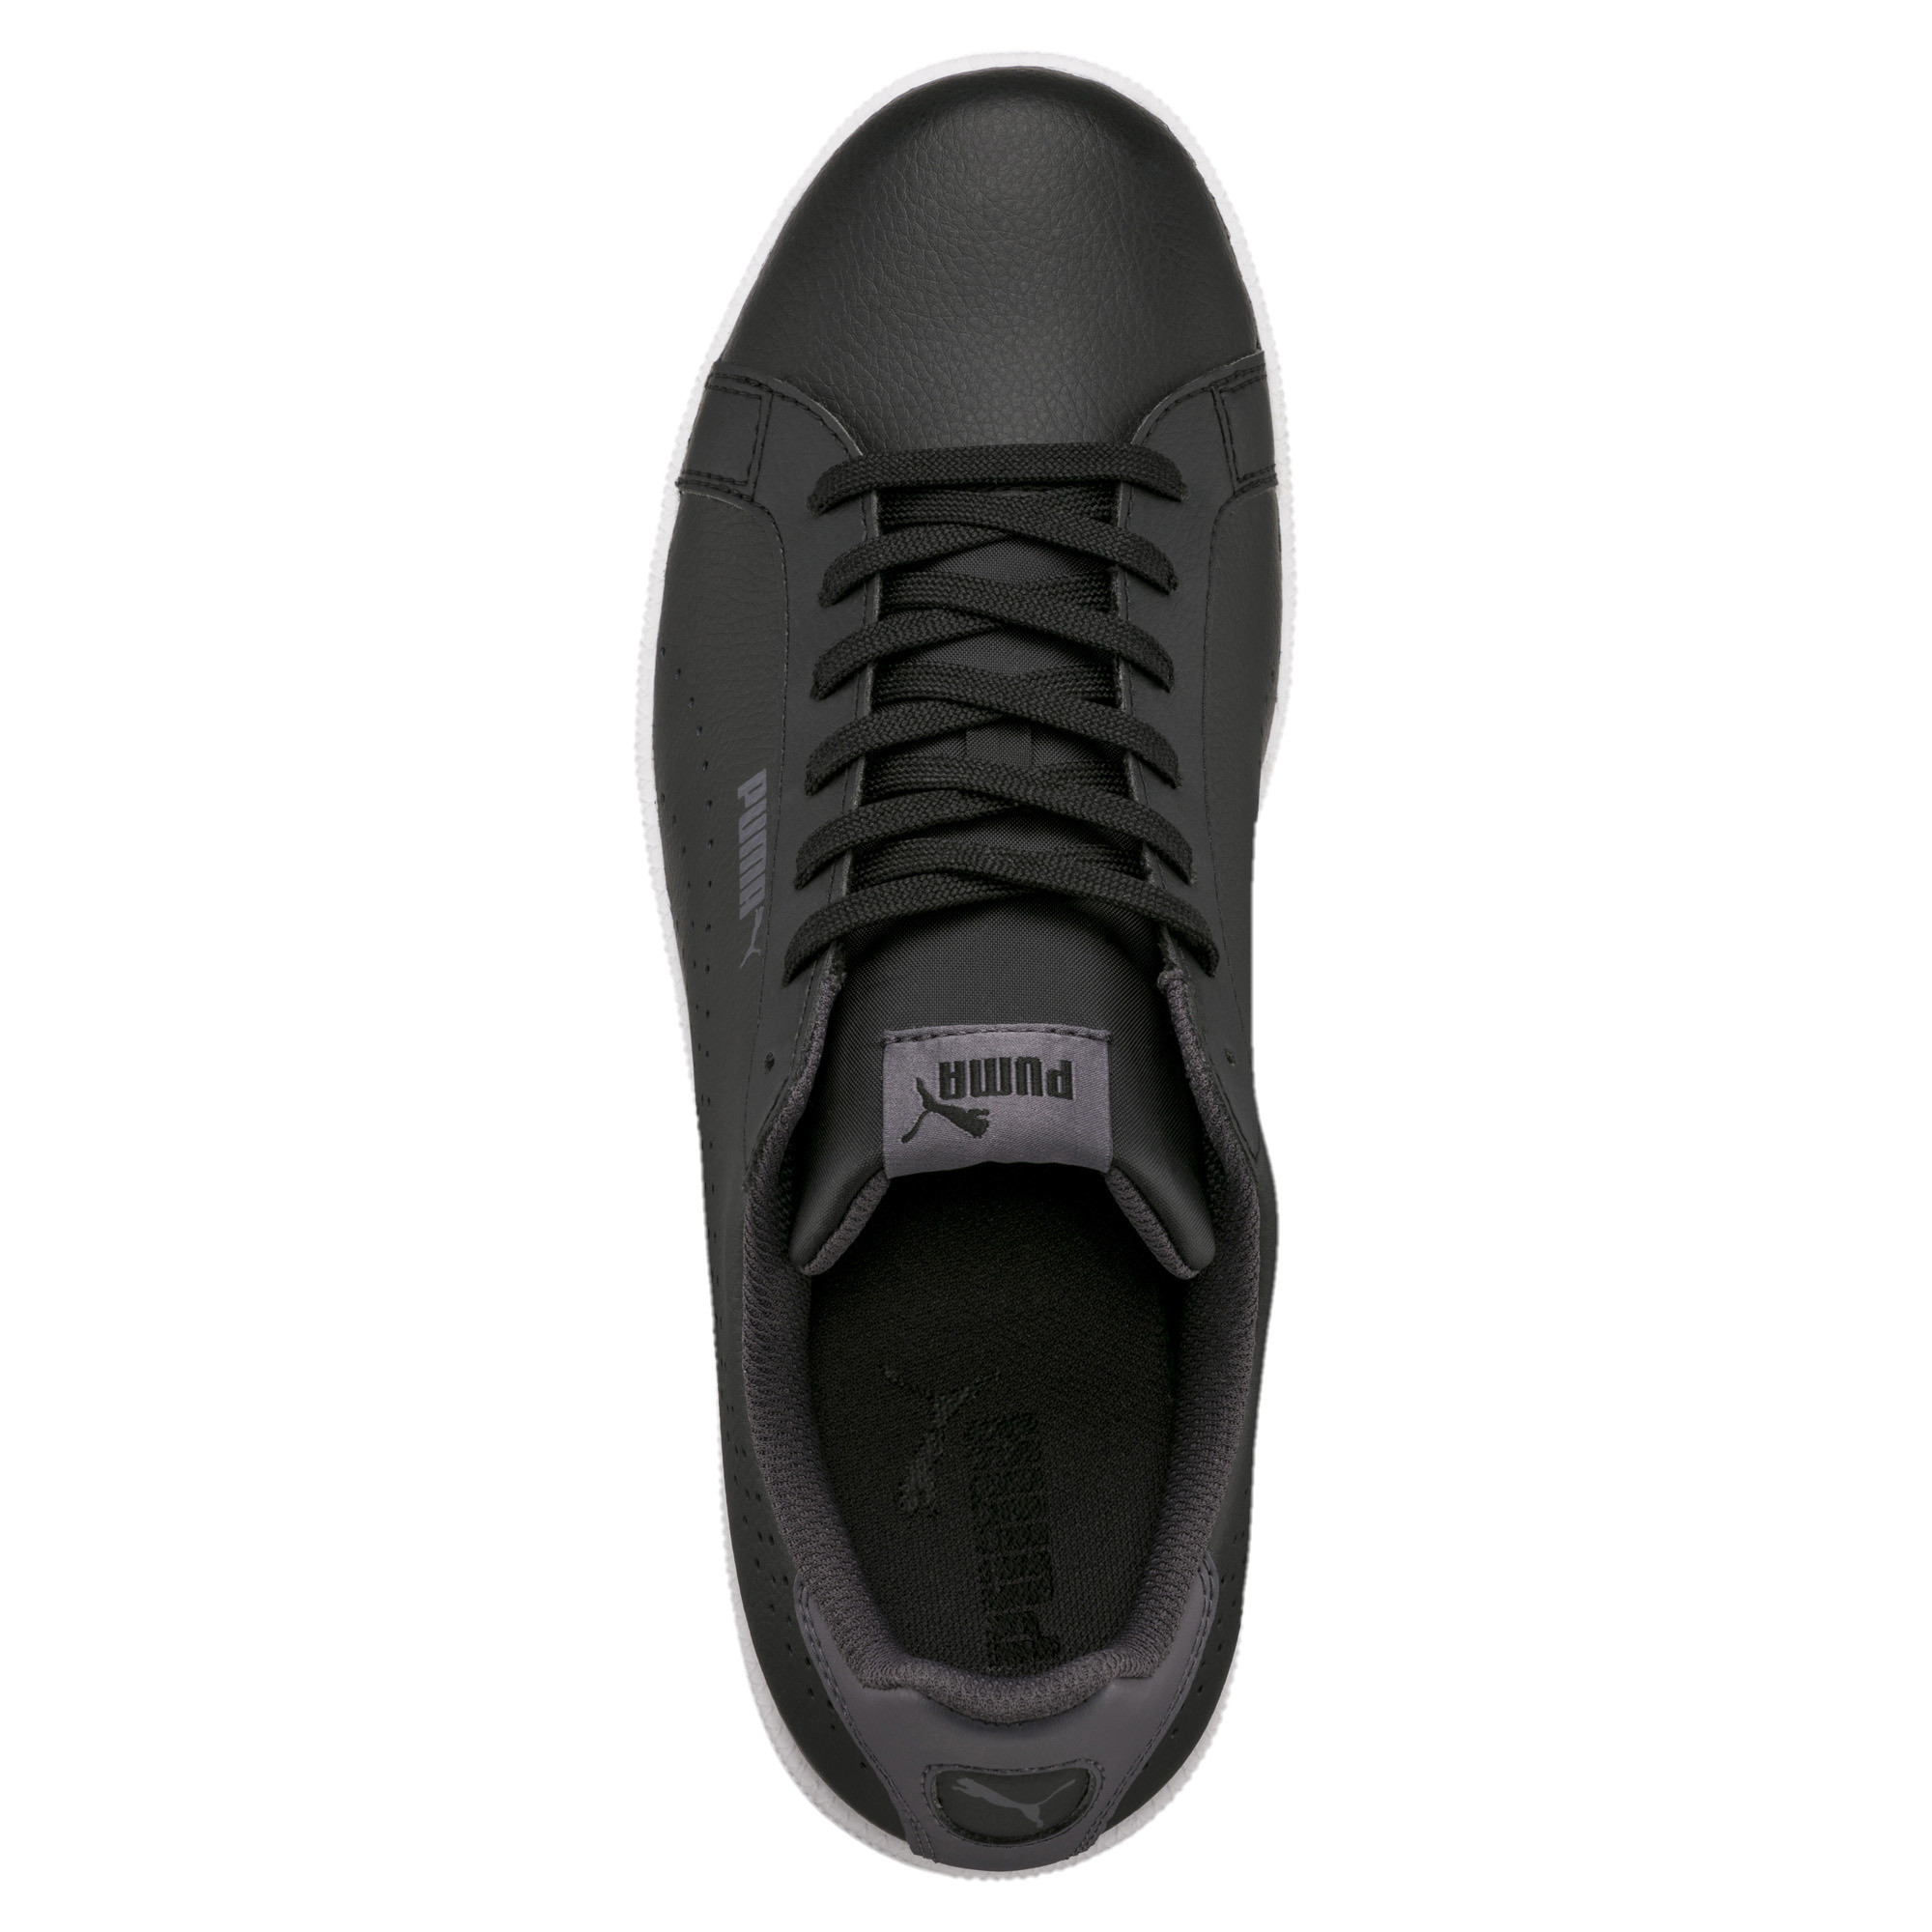 PUMA-PUMA-Smash-Perf-Men-039-s-Sneakers-Men-Shoe-Basics thumbnail 11